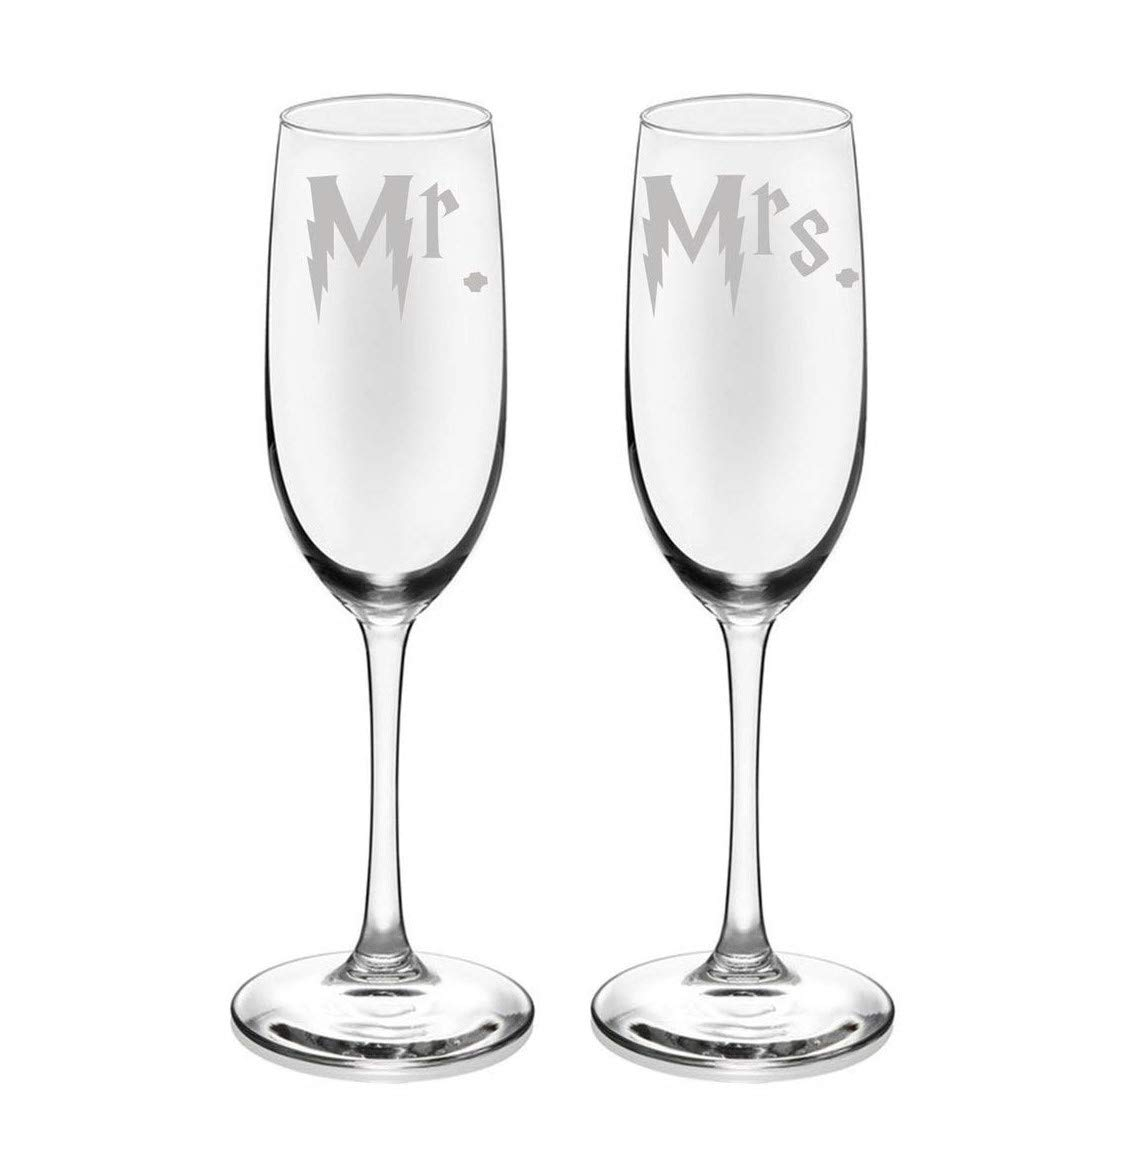 Harry Mr. and Mrs. Etched Champagne Flute Set of TWO Wedding Gift Glassware (Potter Wedding Gift